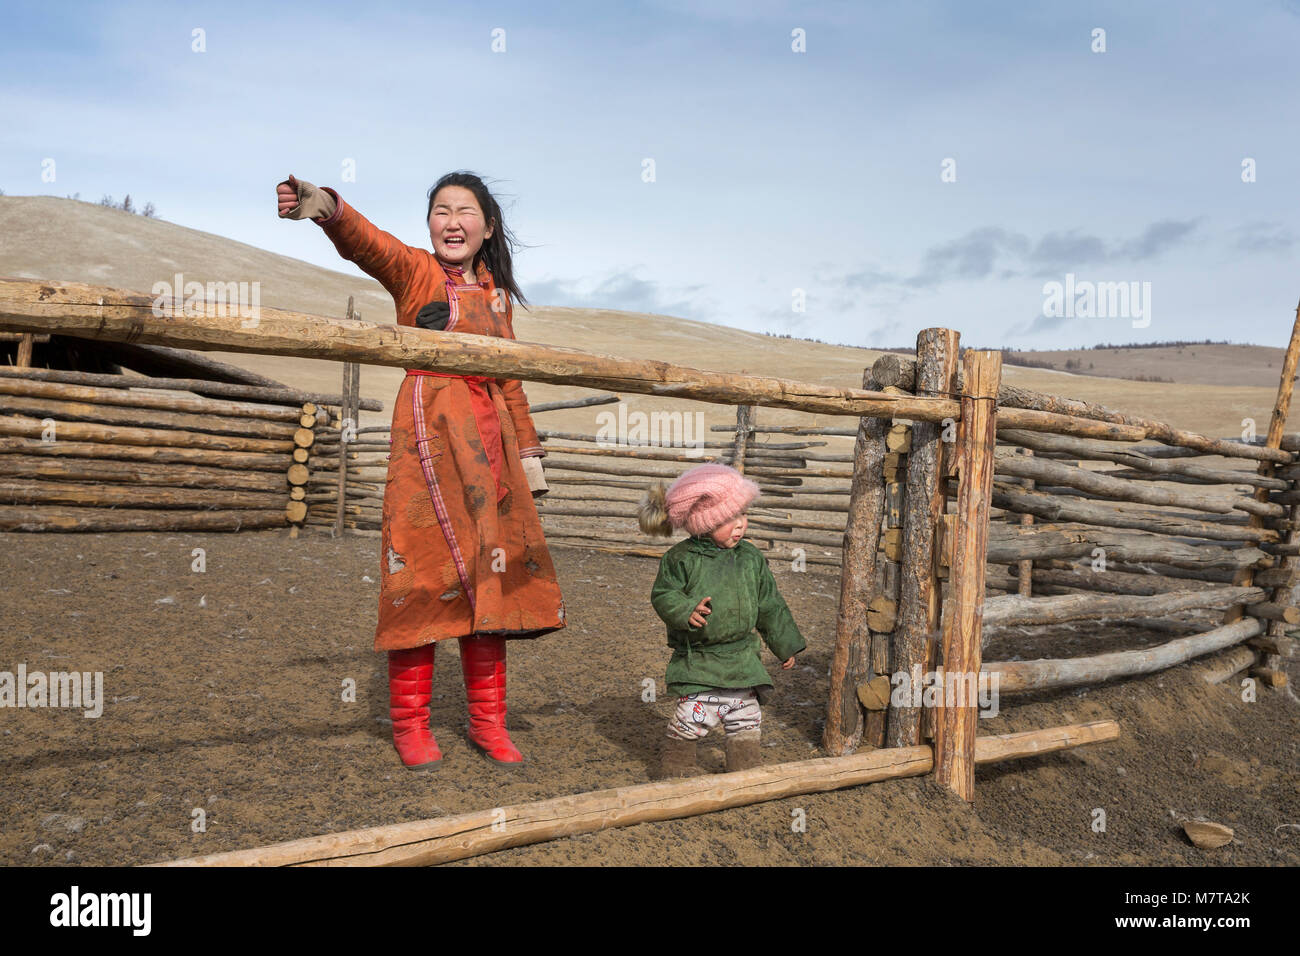 Hatgal, Mongolia, 3rd March 2018: mongolian kids in a steppe of northern Mongolia - Stock Image